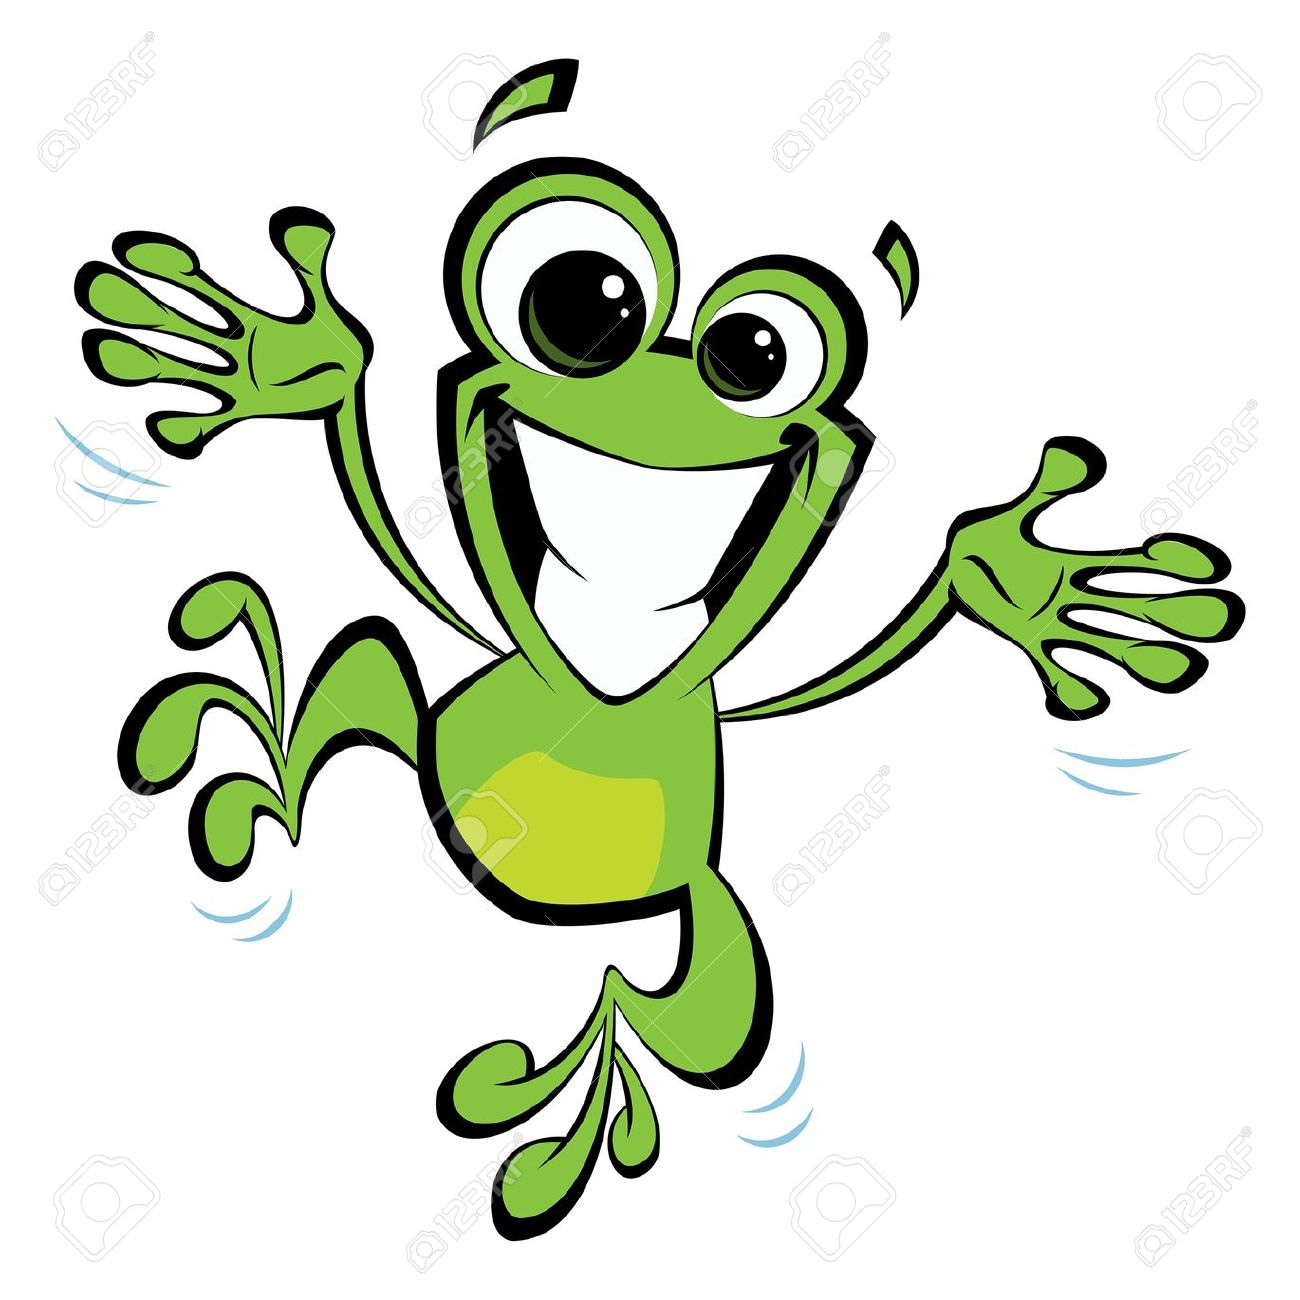 Happy Cartoon Green Smiling Frog Jumping Excited And Spreading.